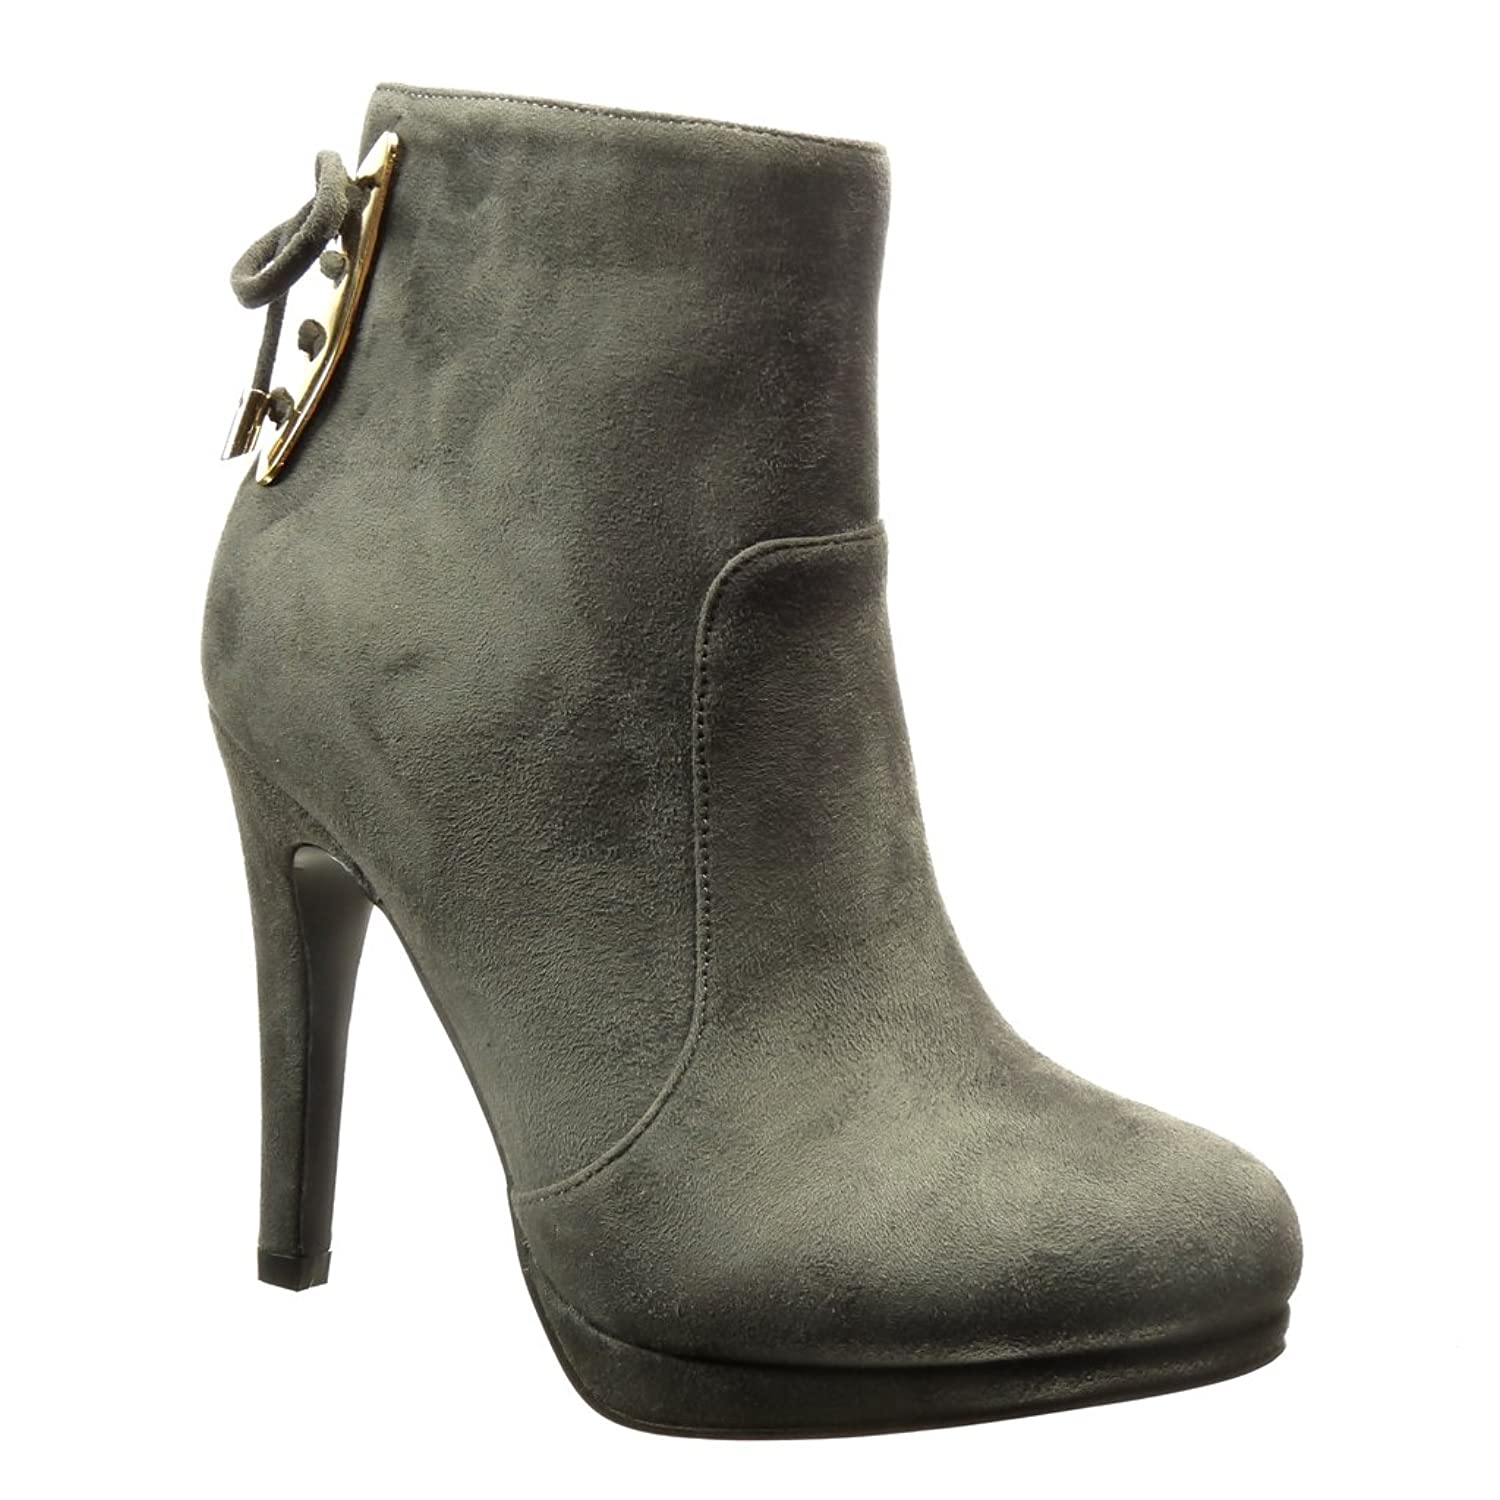 Angkorly - damen Schuhe Stiefeletten - Low boots - Sexy - Knoten - metallisch Stiletto high heel 11 CM Grau